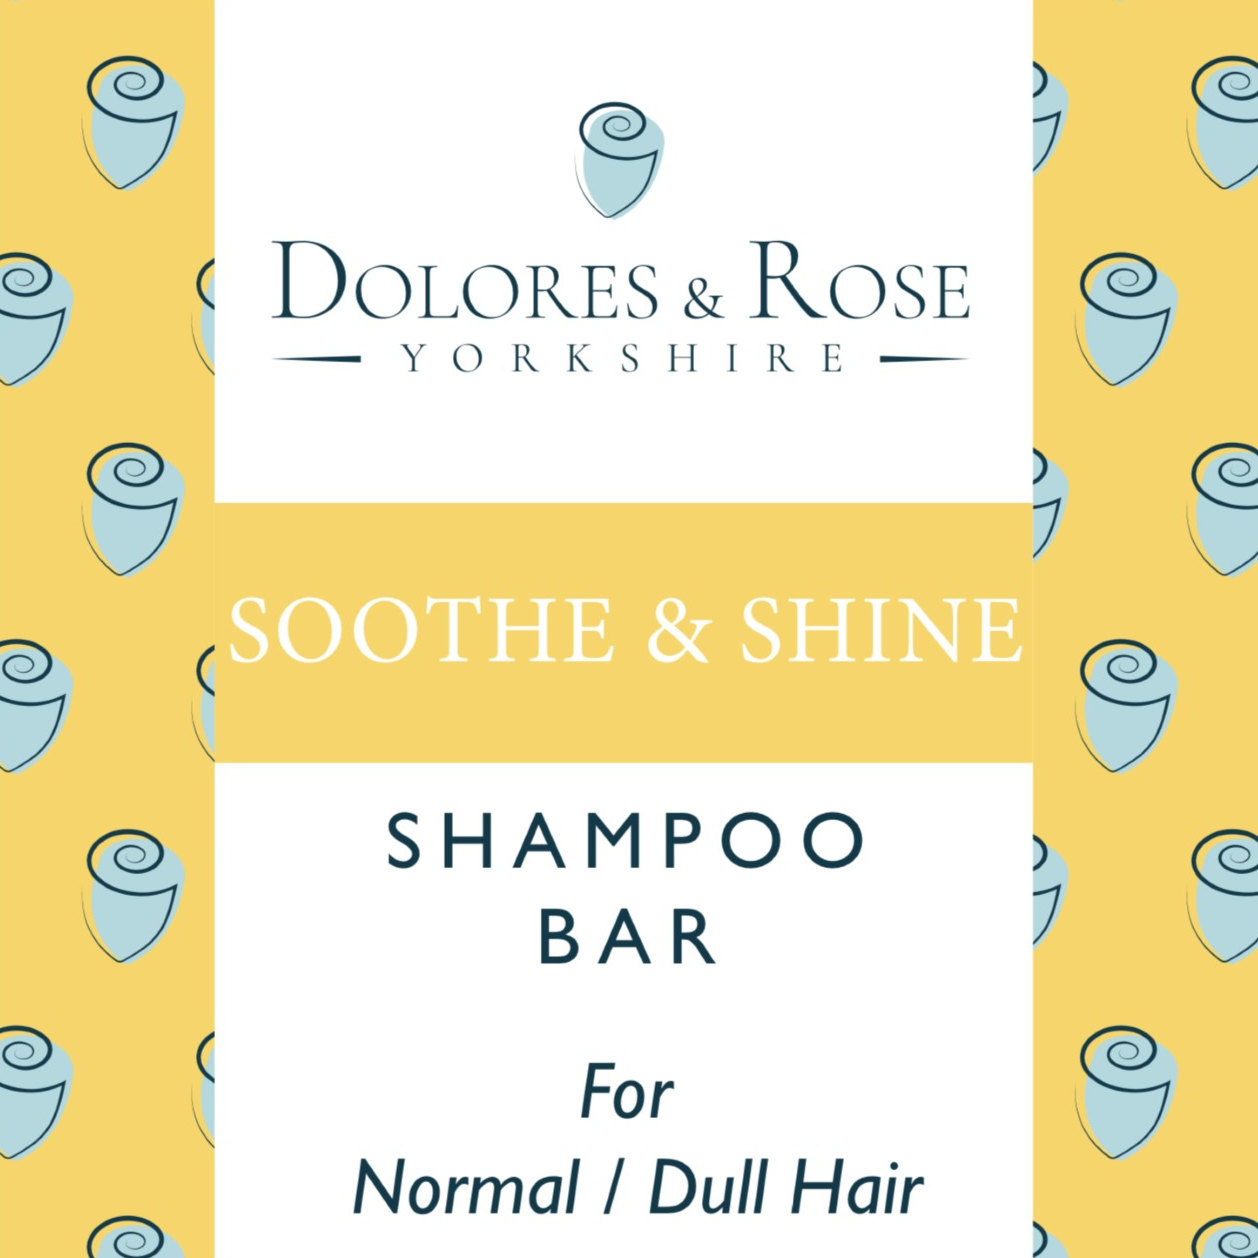 Dolores & Rose Soothe and Shine Shampoo Bar